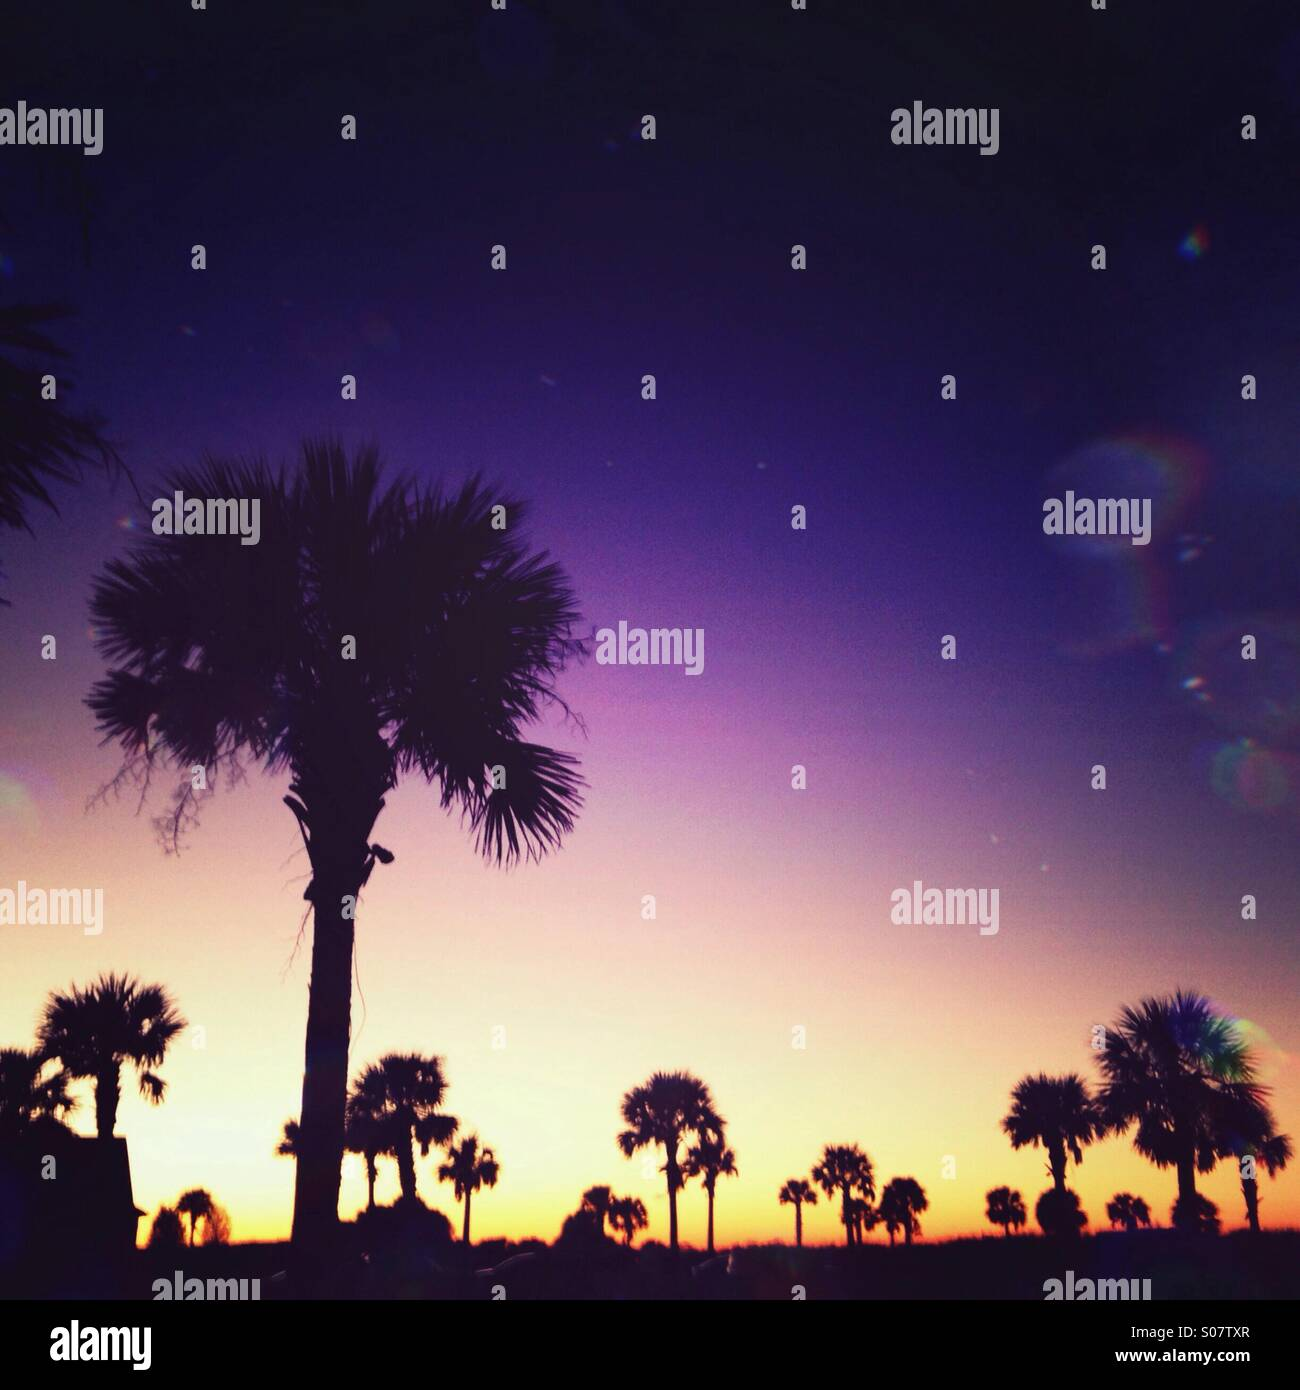 Palmetto trees are silhouetted against an evening sky on Kiawah Island, SC. - Stock Image